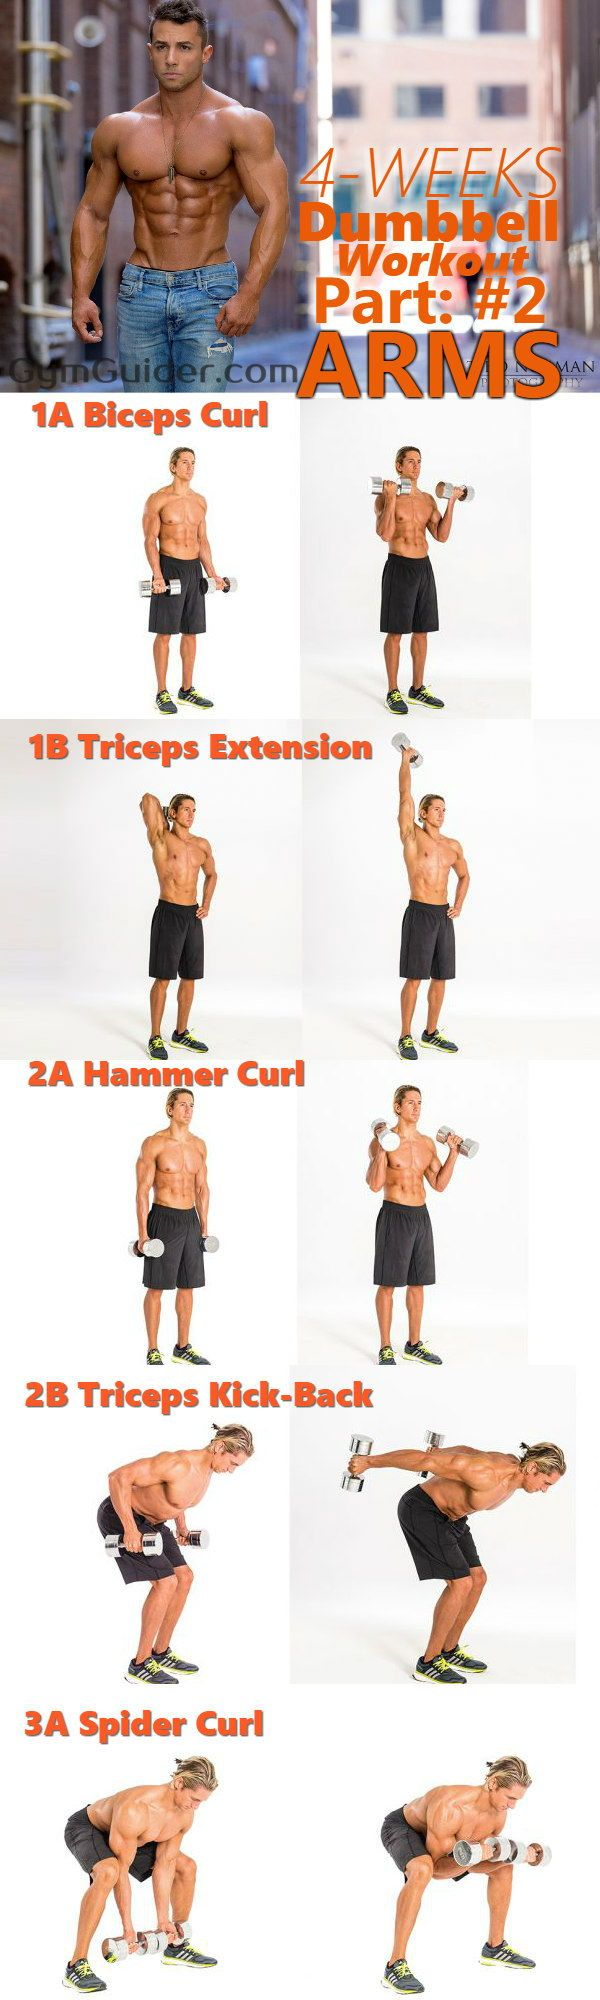 The 4-Week Dumbbell Workout Plan Part 2: Arms